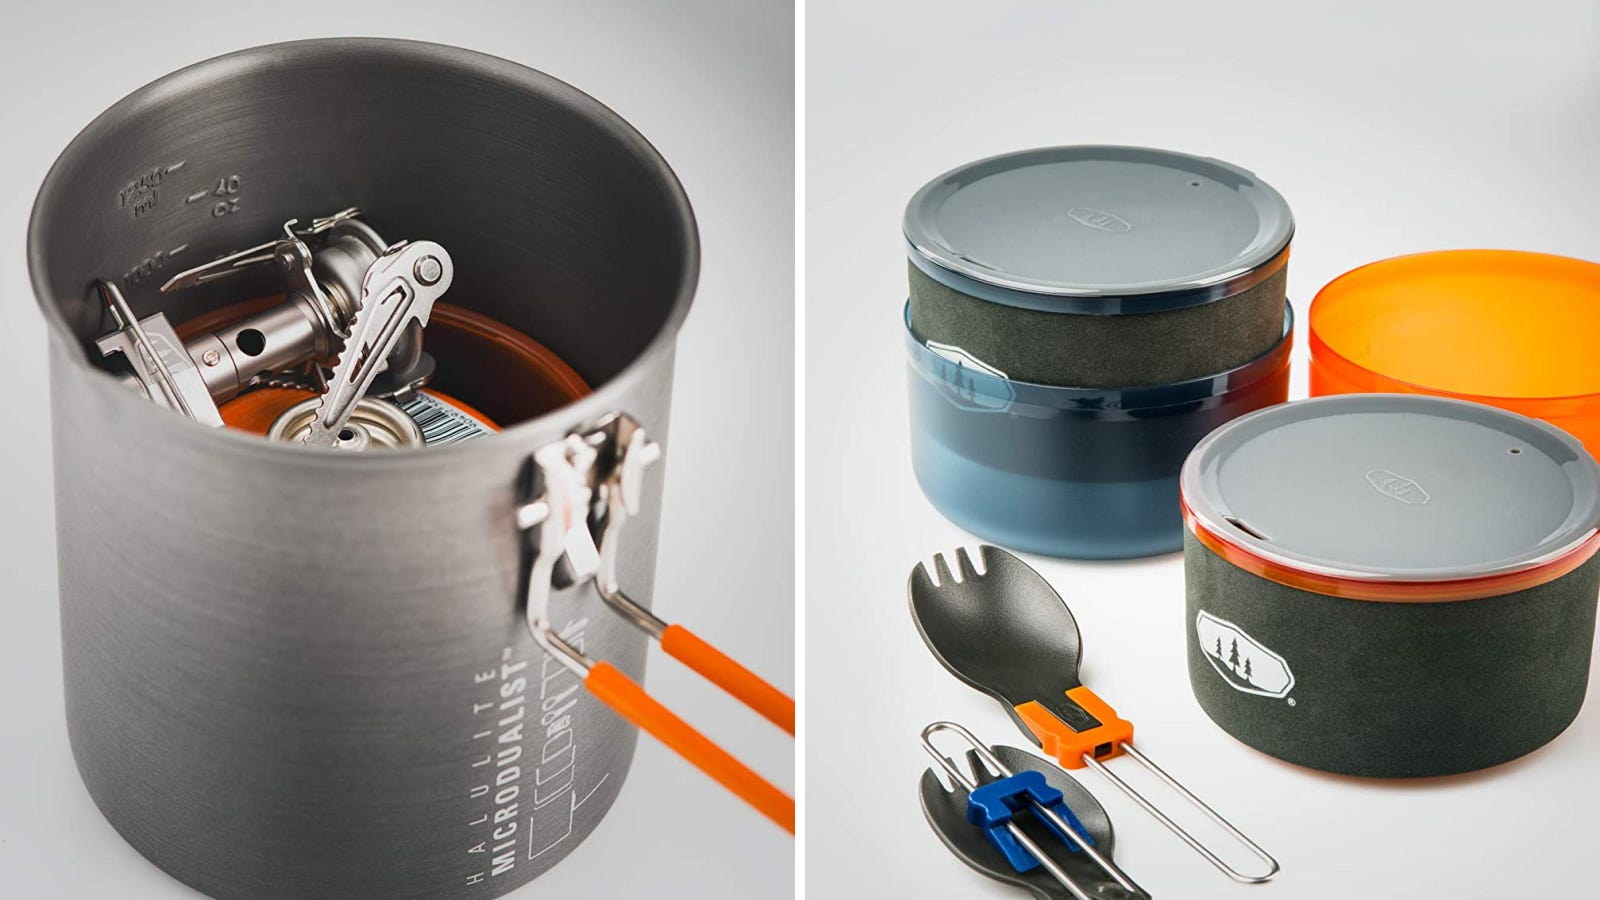 Two images featuring the GSI microduelist cookware pot with utentils and marrying bowls.